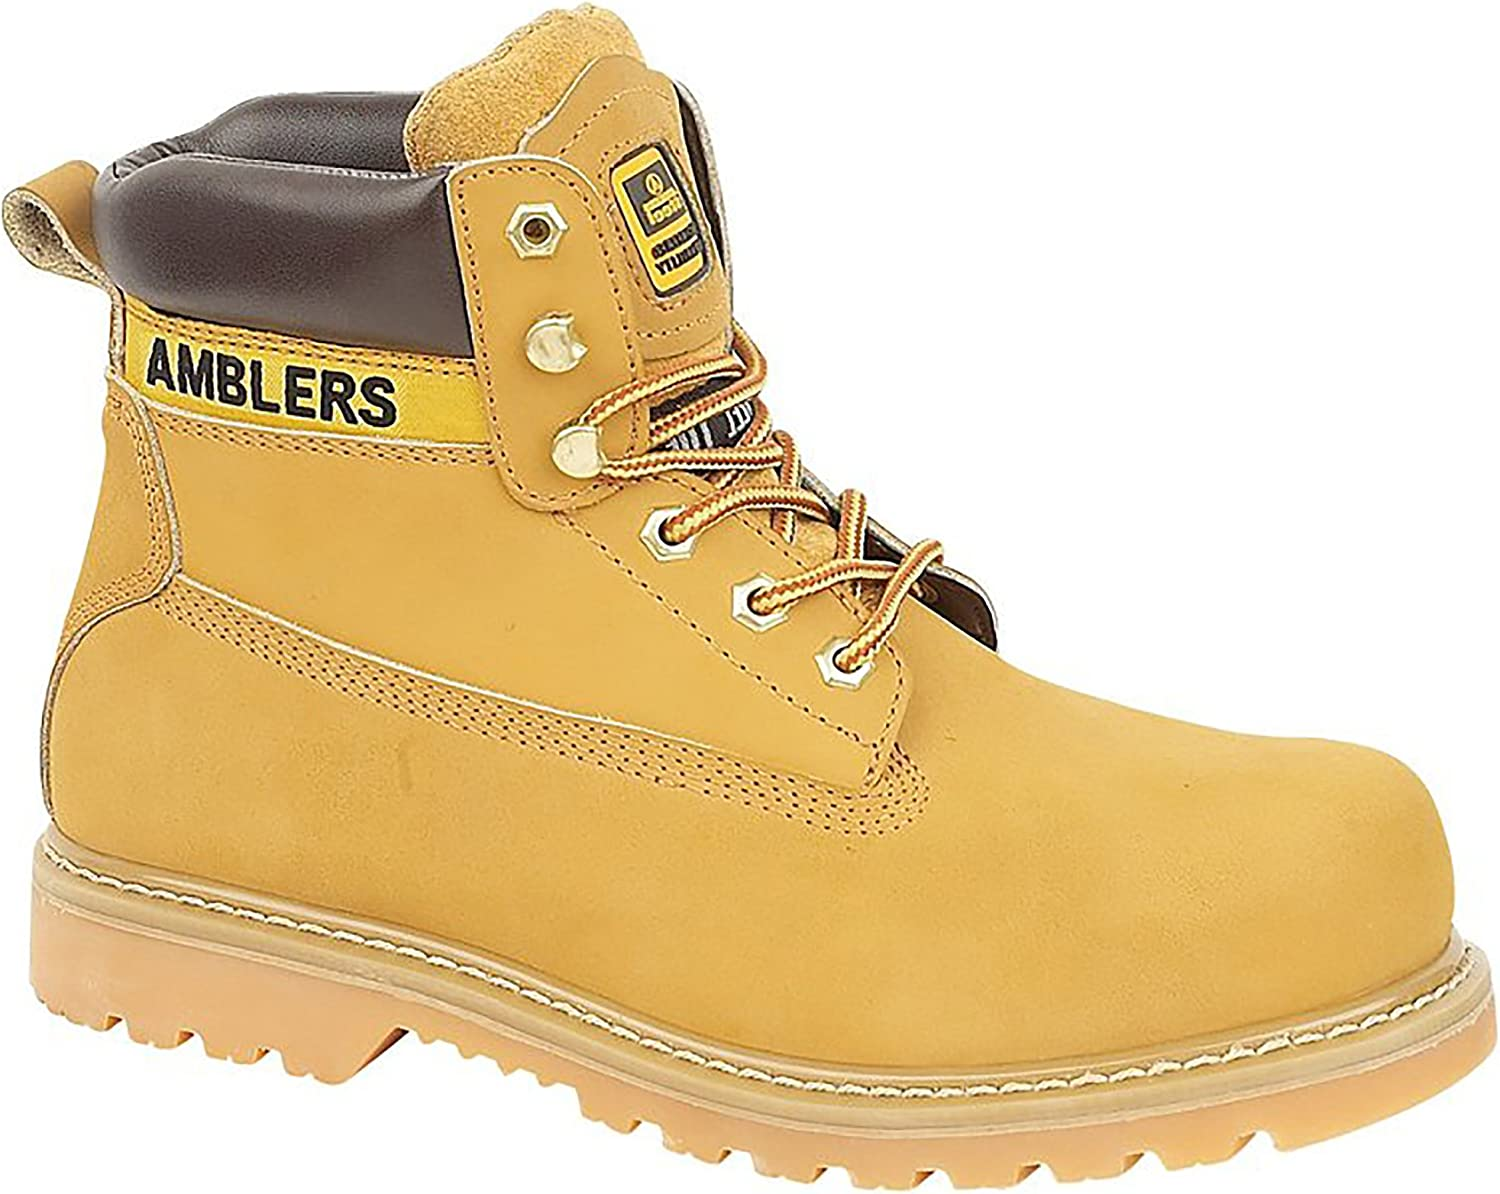 Amblers Steel FS7 Steel Toe Cap Boot   Womens Boots (8 US) (Honey)